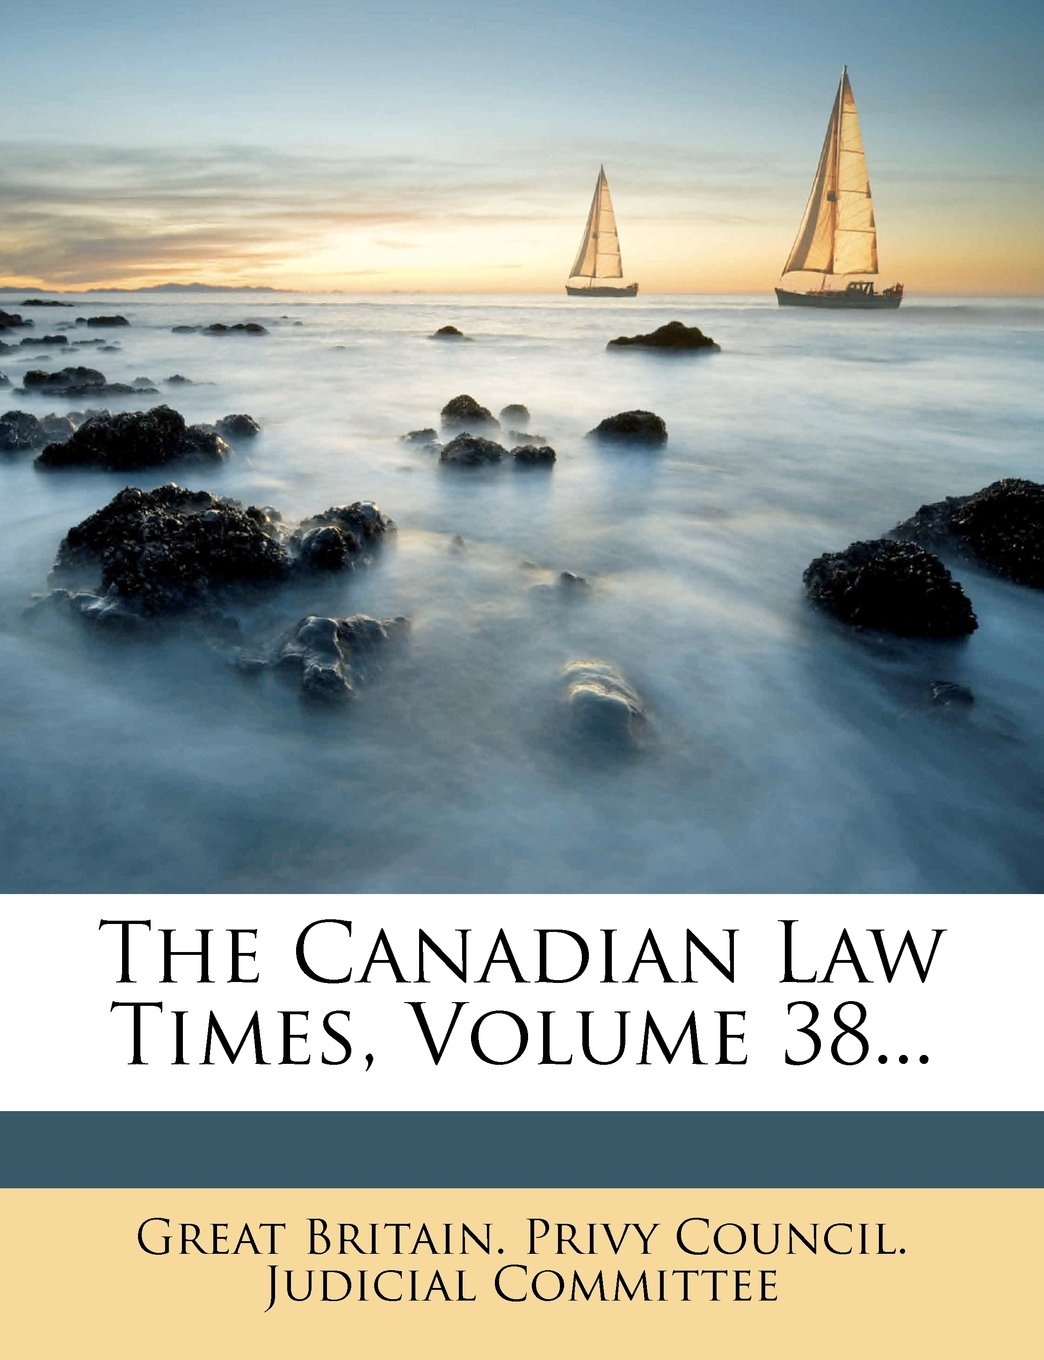 The Canadian Law Times, Volume 38... pdf